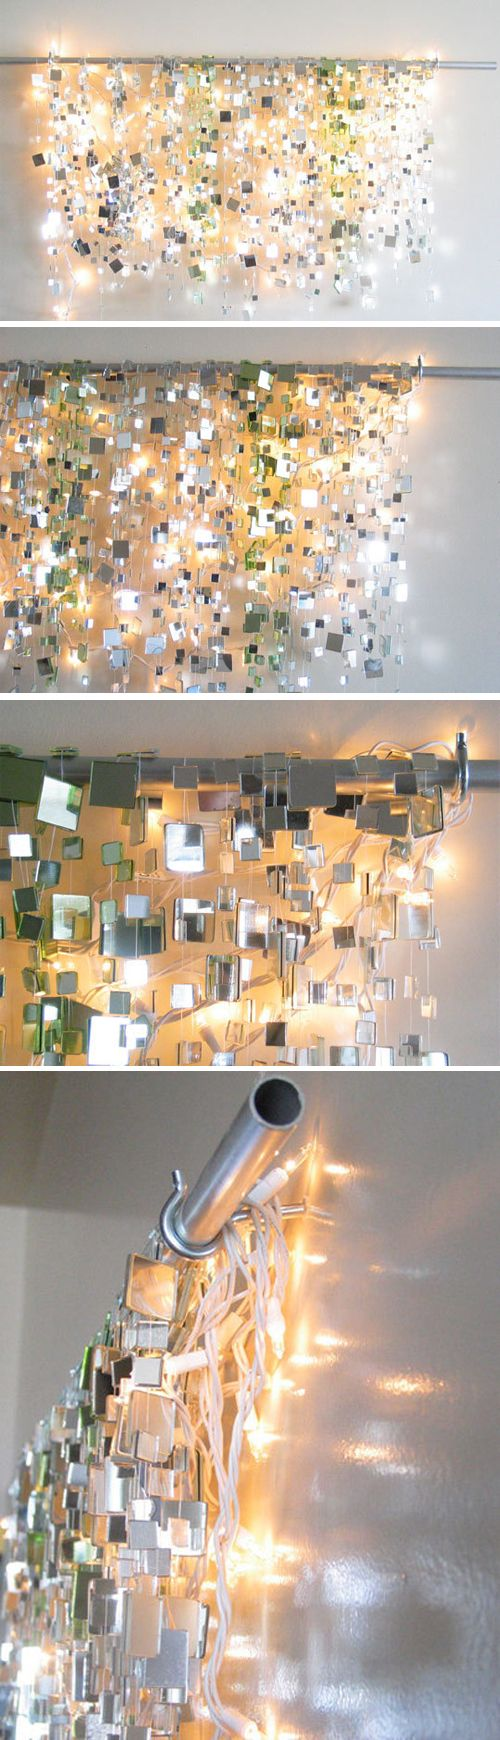 Small mirror tiles glued to fishing line with  lights behind it